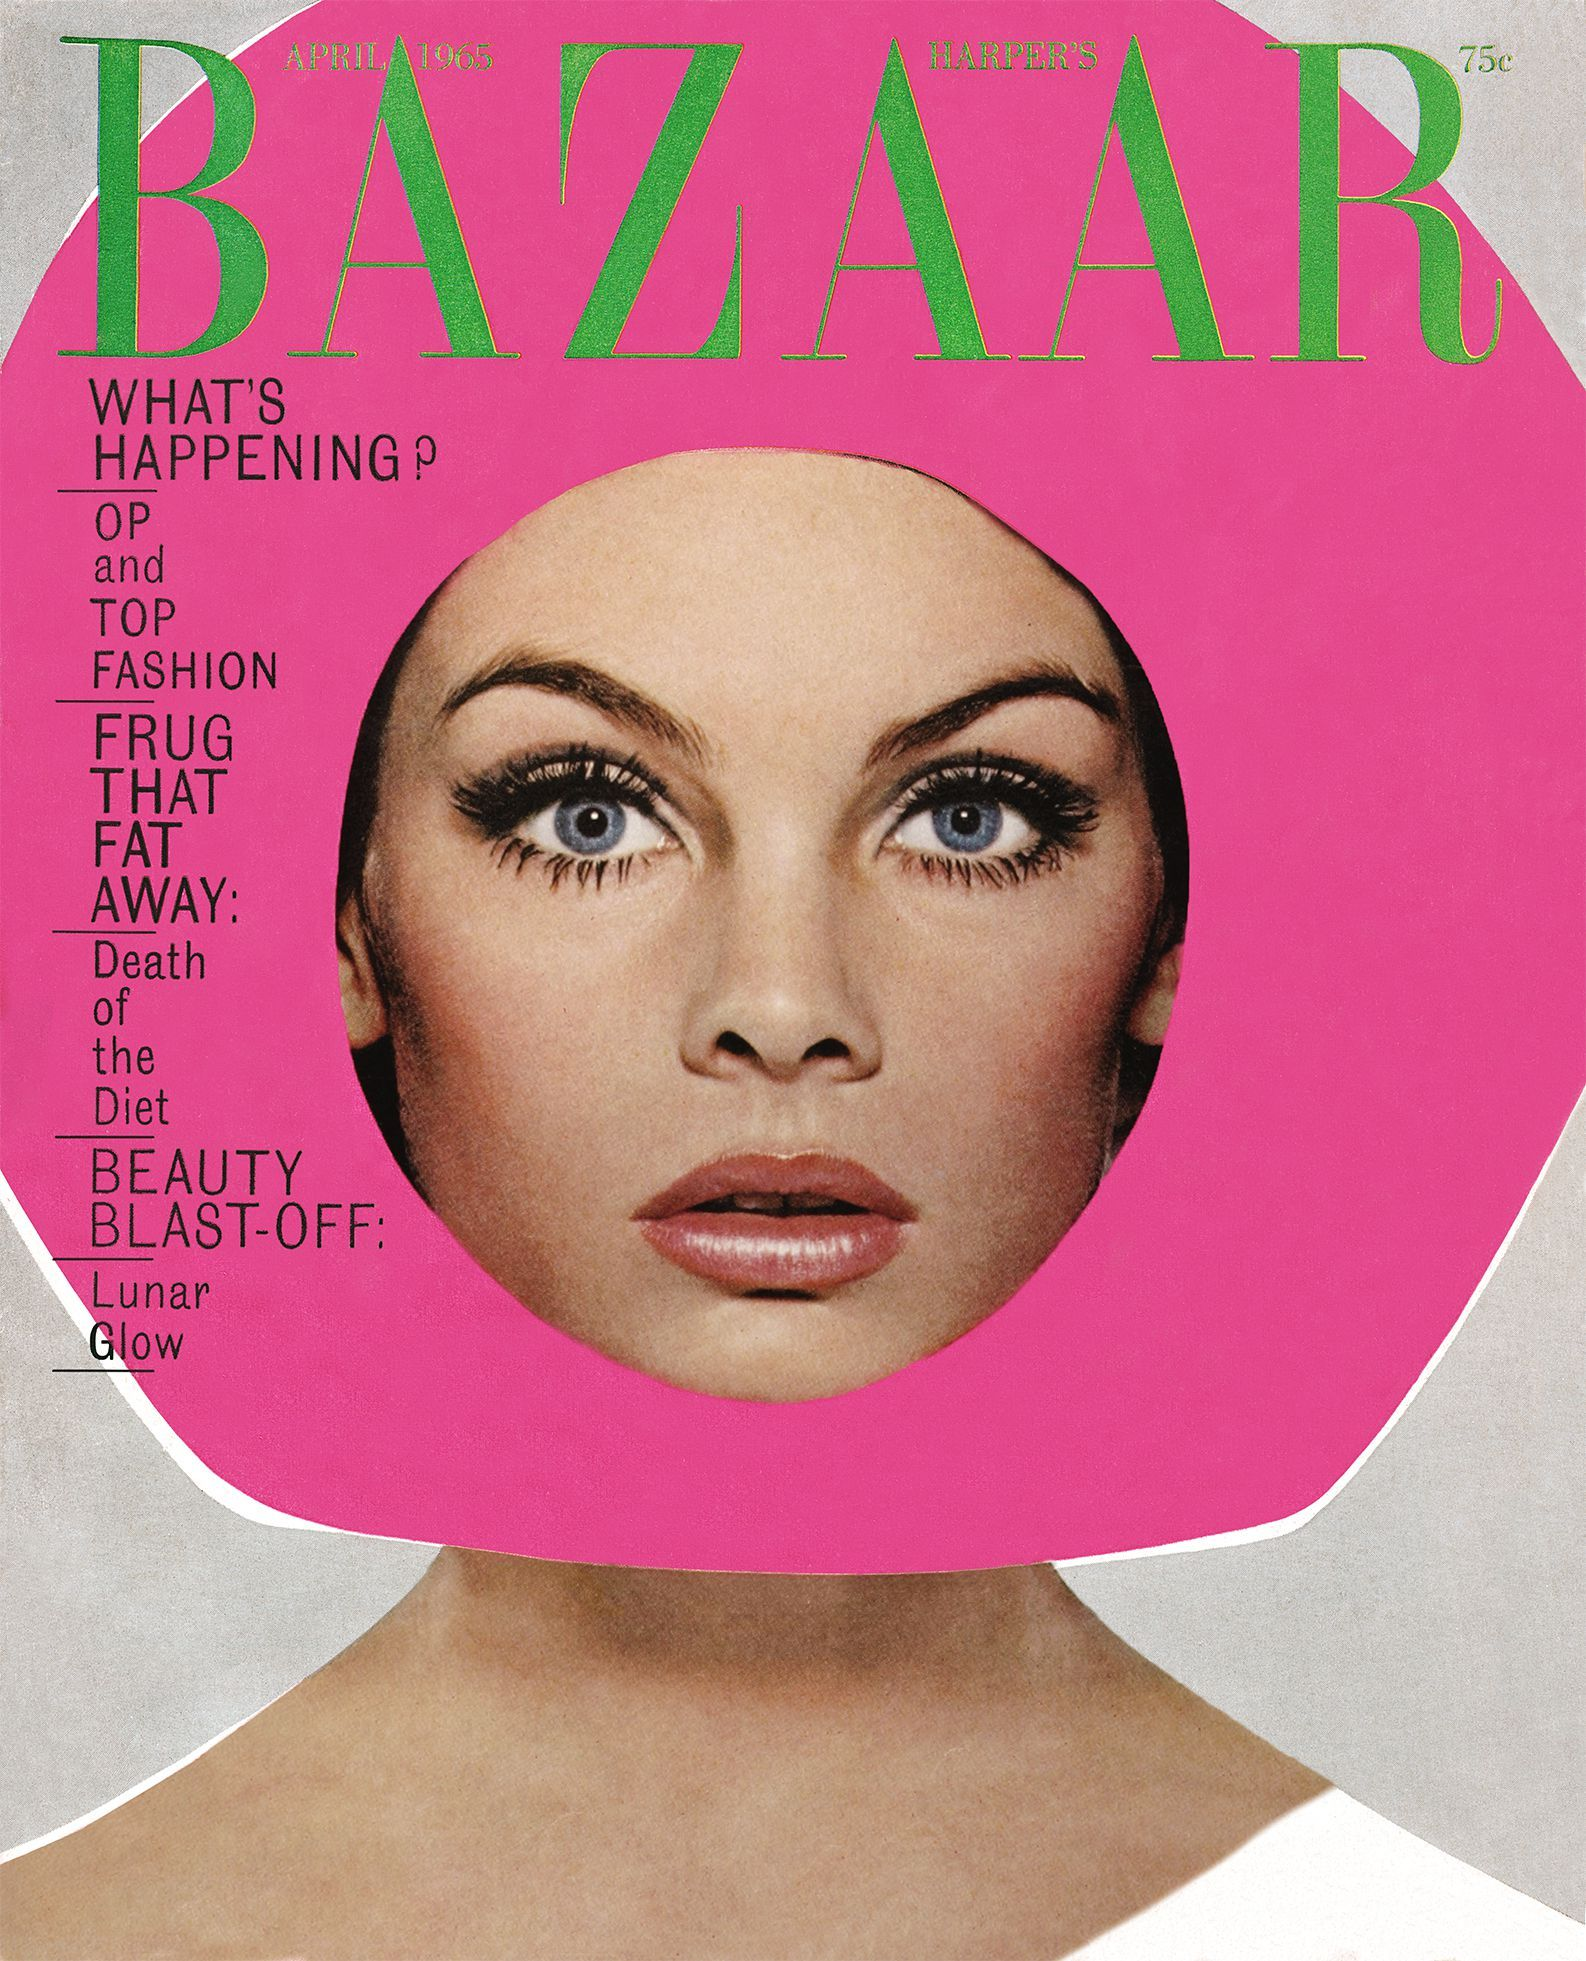 Pop Goes Bazaar A Look Back at the Magazine in the 1960s